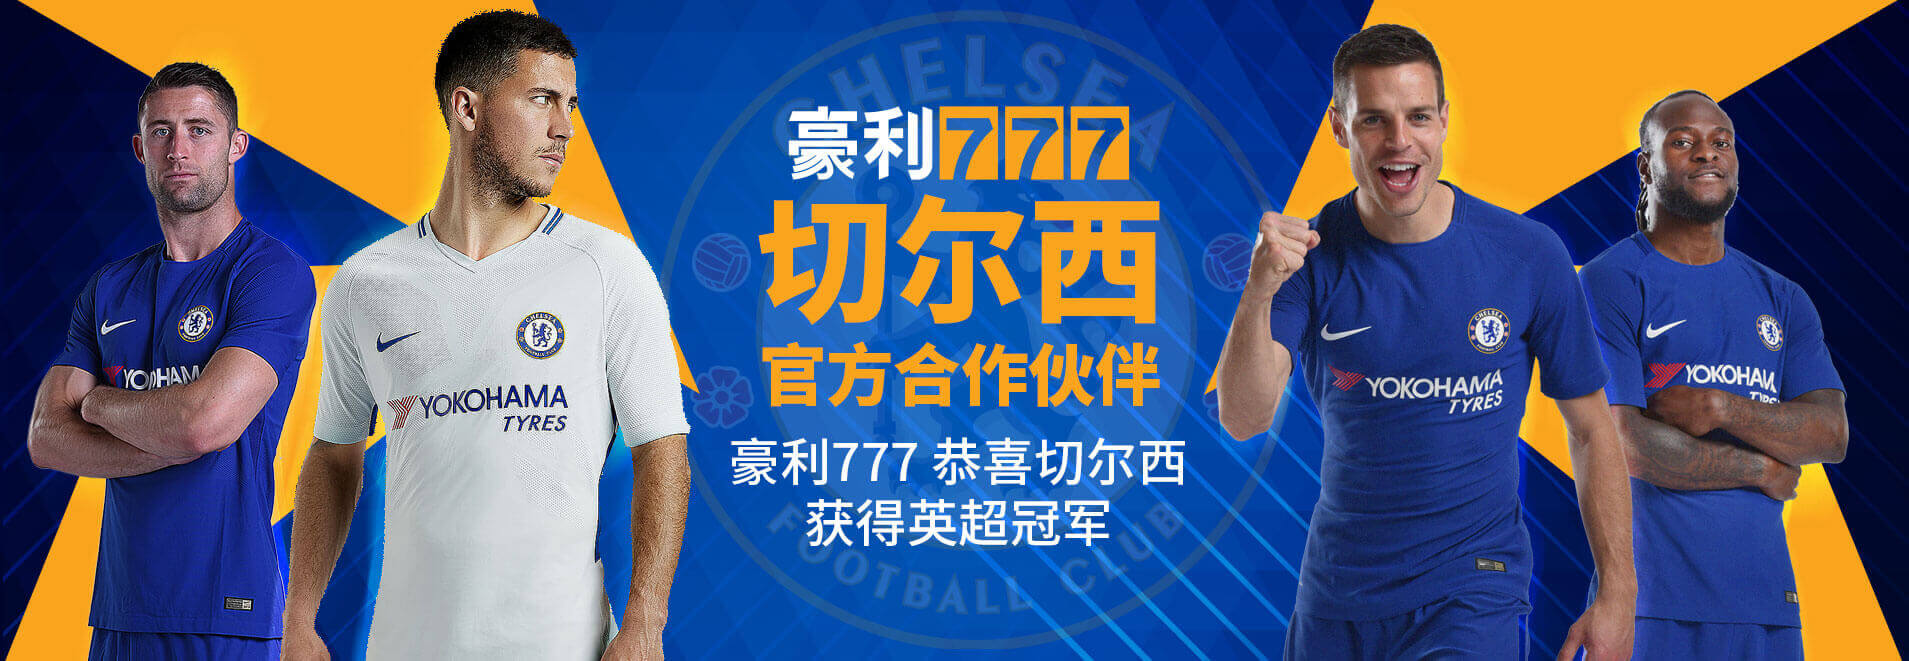 <a href='http://china.chelseafc.com/the-club/sponsors/sponsors---partners/ole777.html' class = 'btn btn-warning' >更多关于</a>